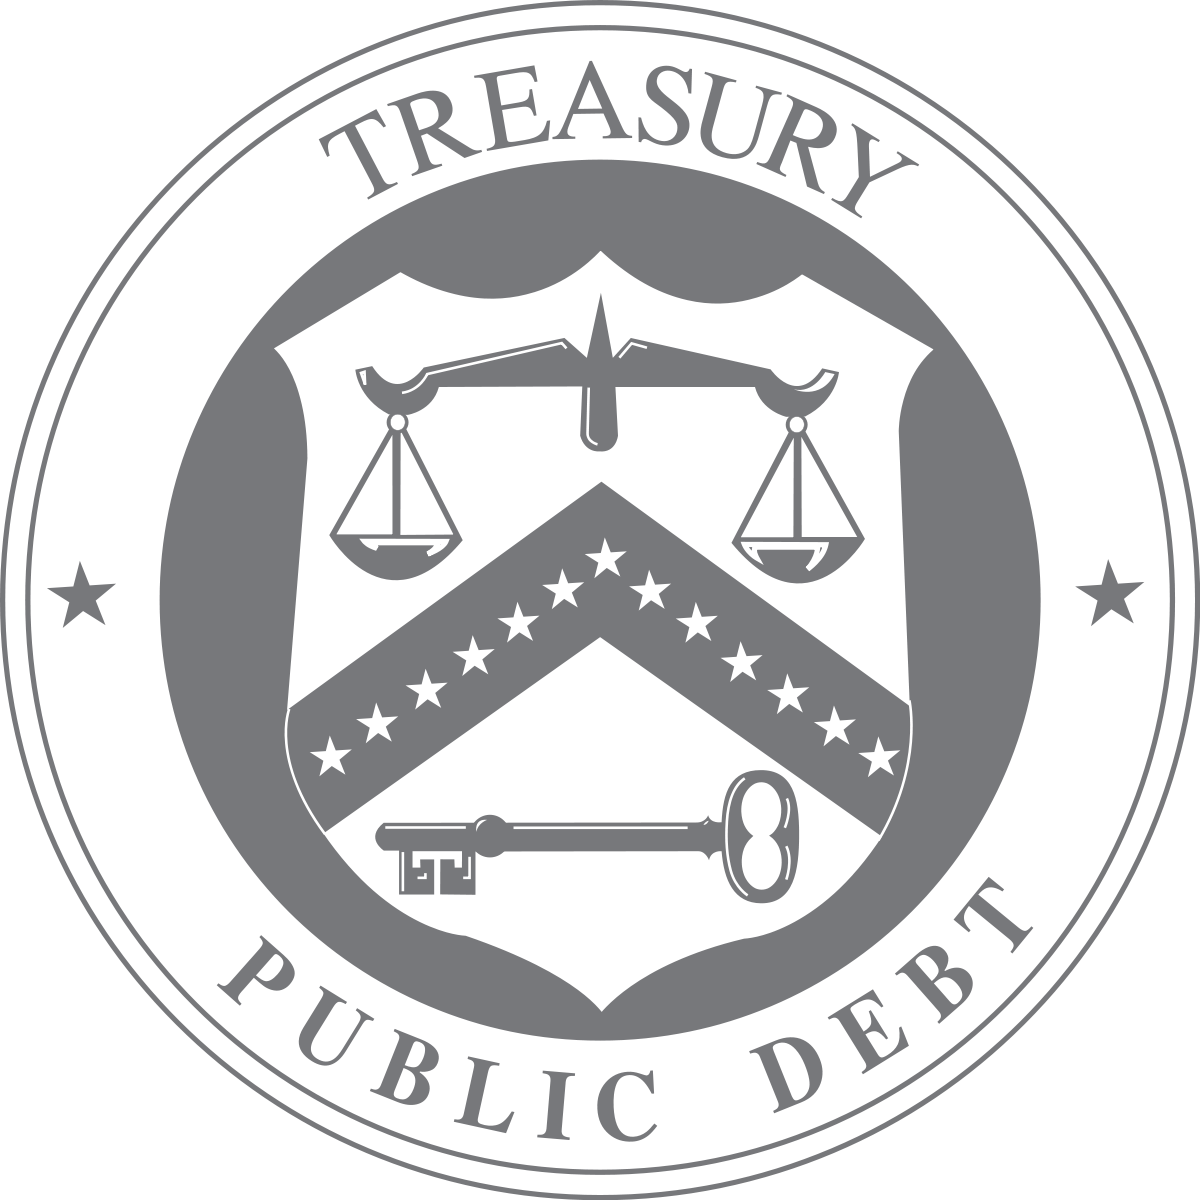 Bureau of the Public Debt.